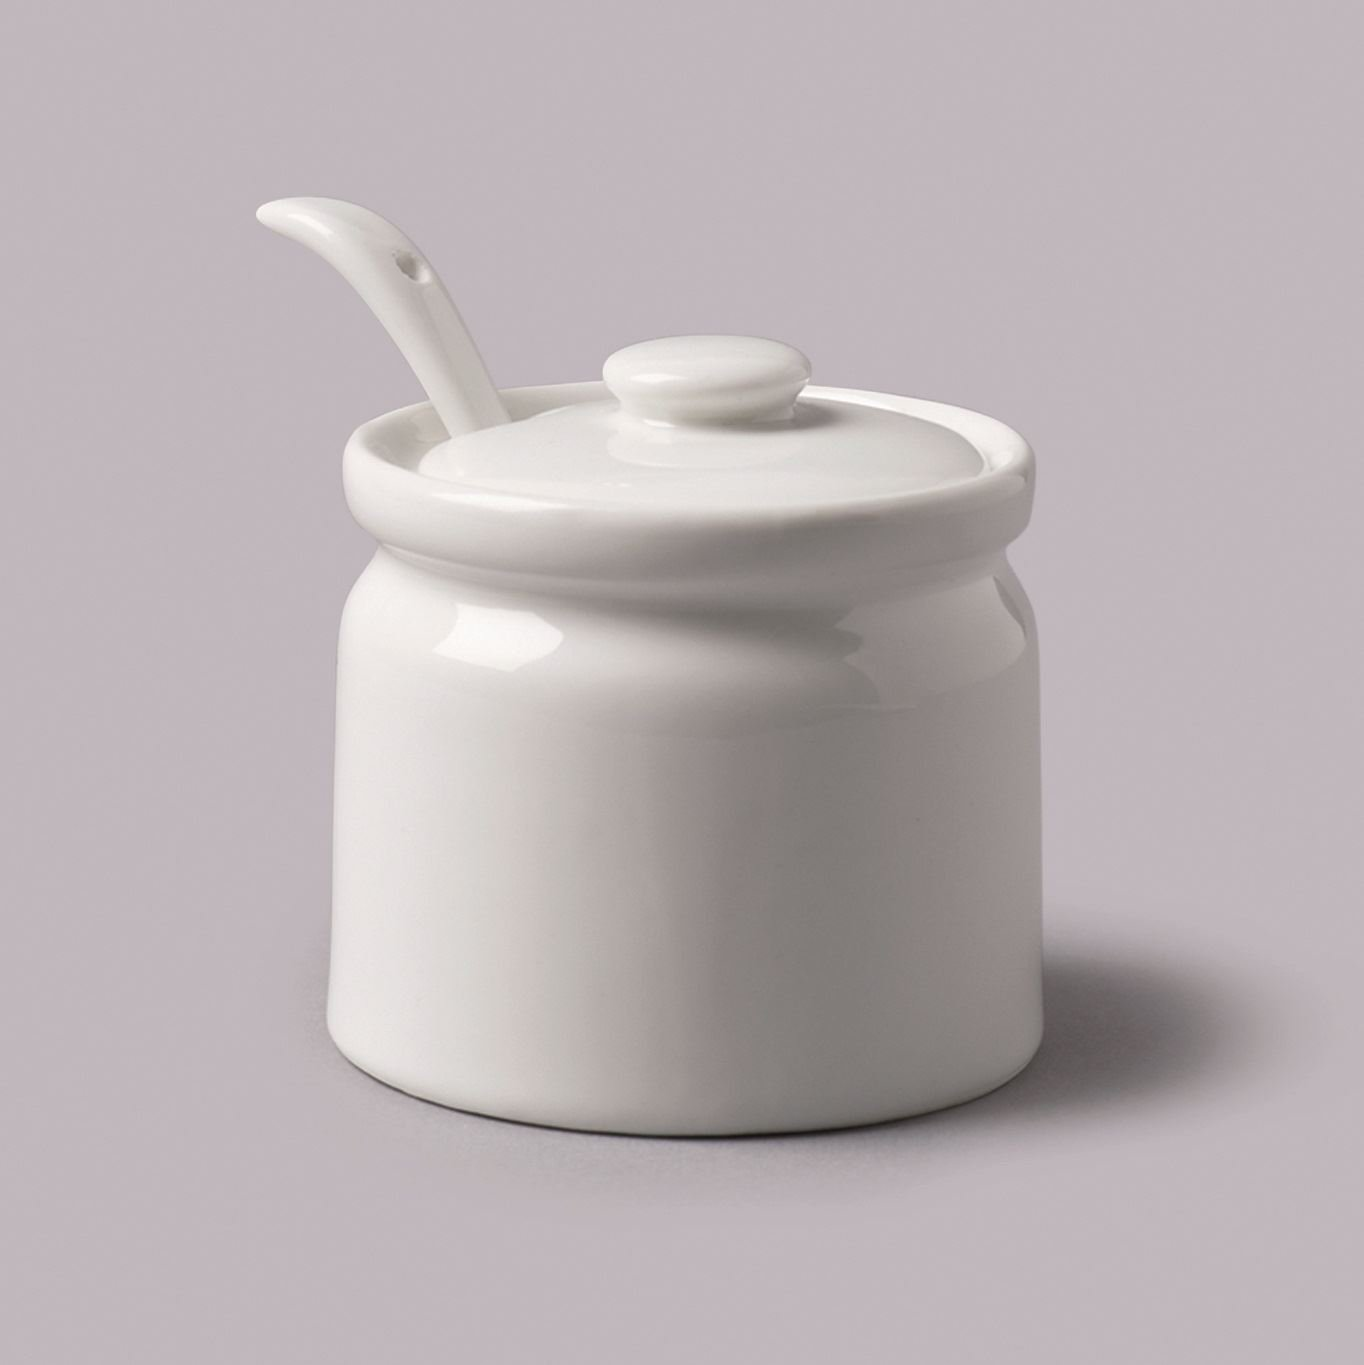 WM Bartleet & Sons Ceramic White Small Sugar Jam Pot with Spoon by WM Bartleet & Sons (Image #1)